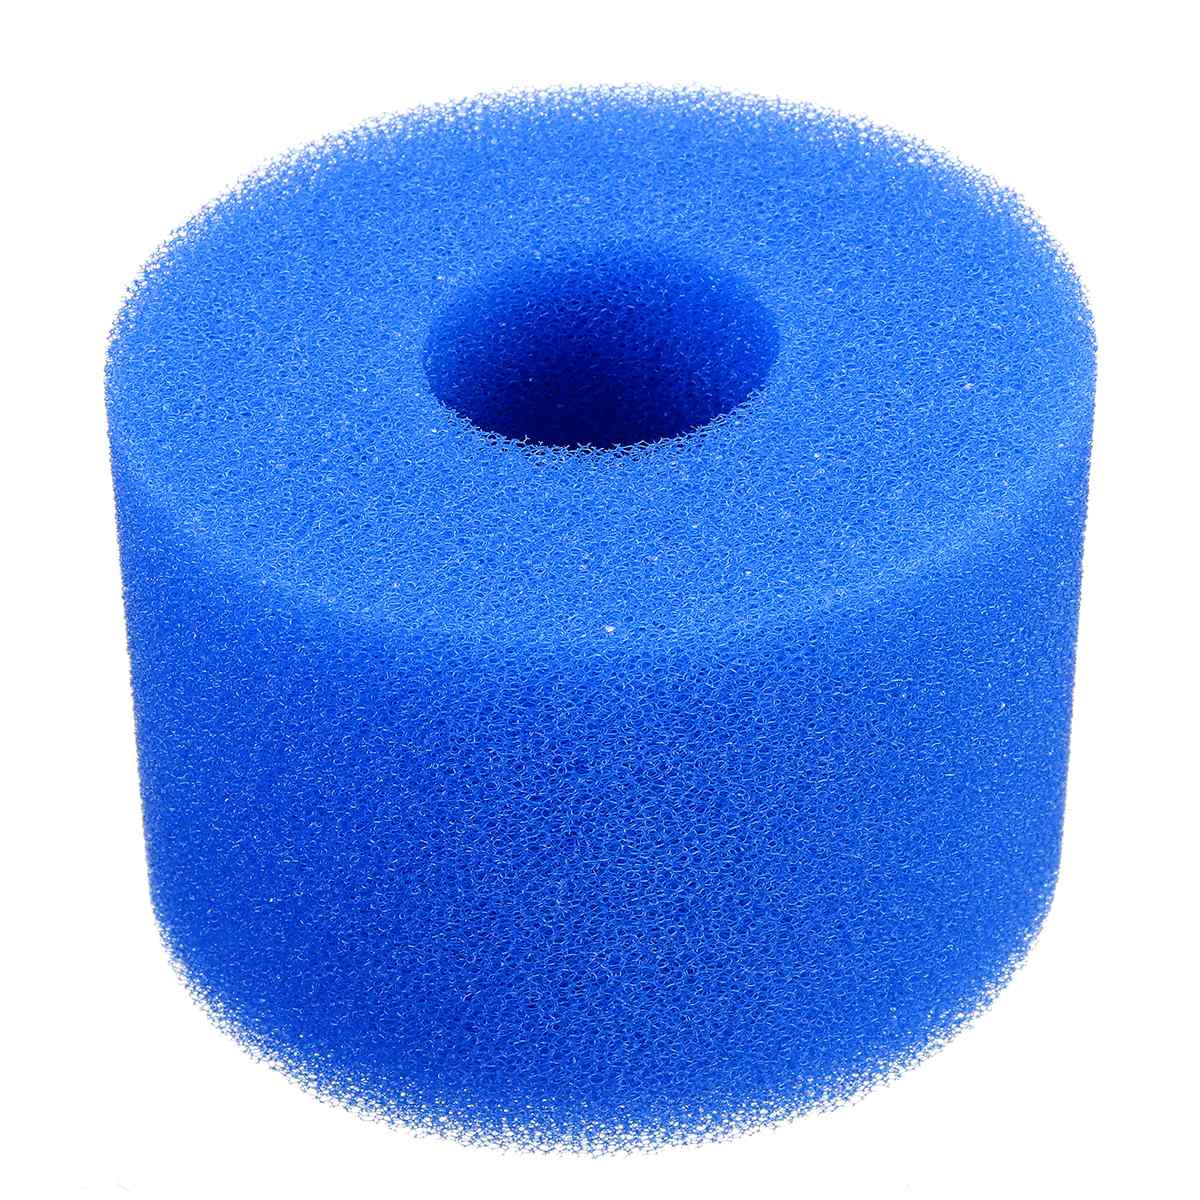 10.8x4x7.3cm Swimming Pool Filter Foam Reusable Washable Sponge Cartridge Foam Suitable Bubble Jetted Pure SPA For Intex S1 Type10.8x4x7.3cm Swimming Pool Filter Foam Reusable Washable Sponge Cartridge Foam Suitable Bubble Jetted Pure SPA For Intex S1 Type